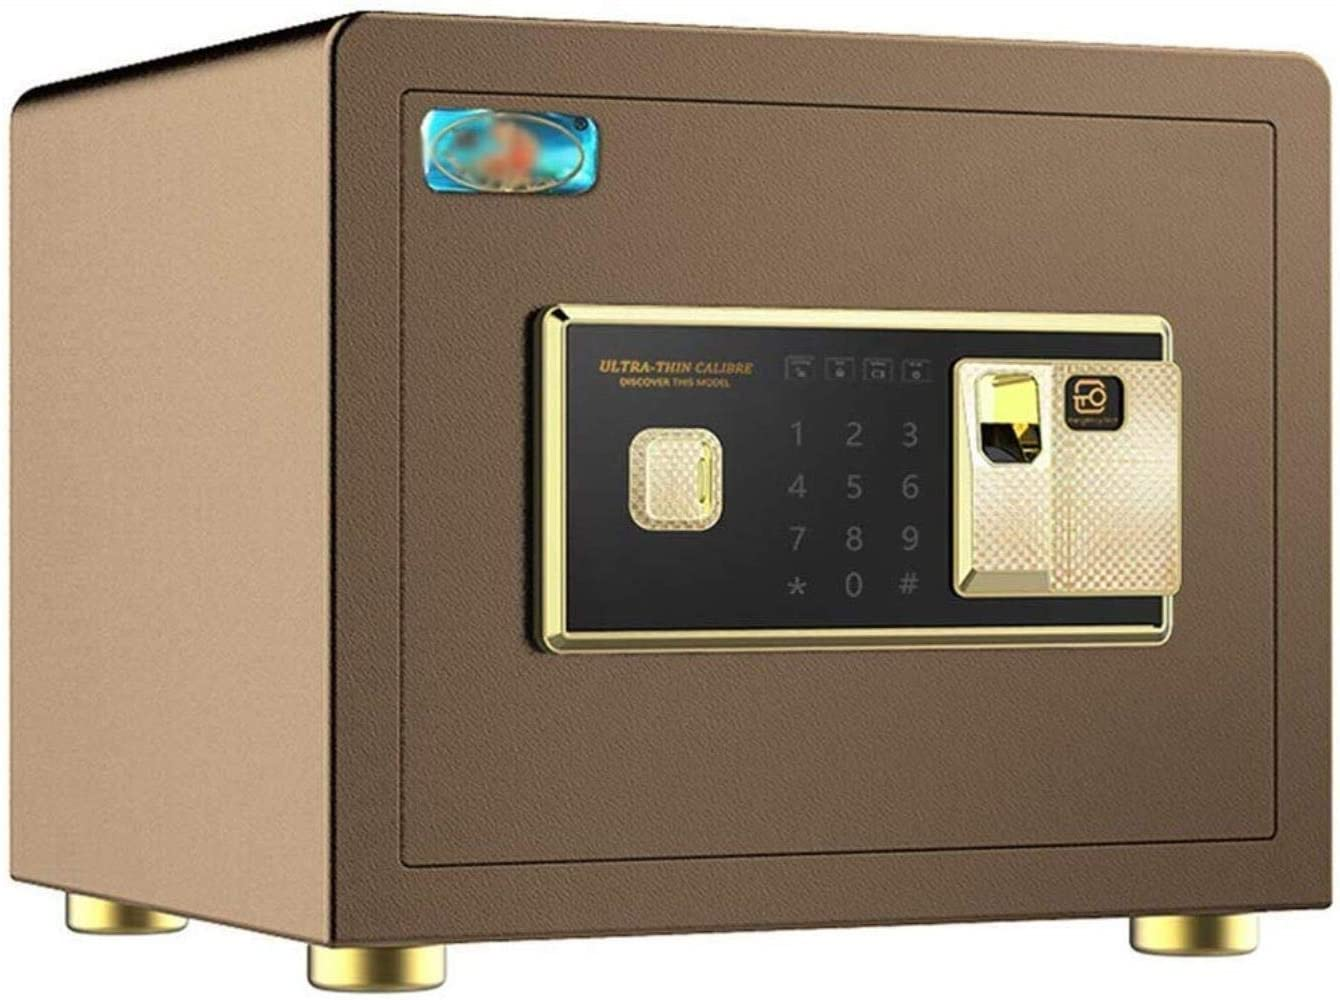 Safes Safes Security Digital Home With Keyboard Manual Cover Button Suitable For Family Business Or Travel 38X32X30Cm Safes